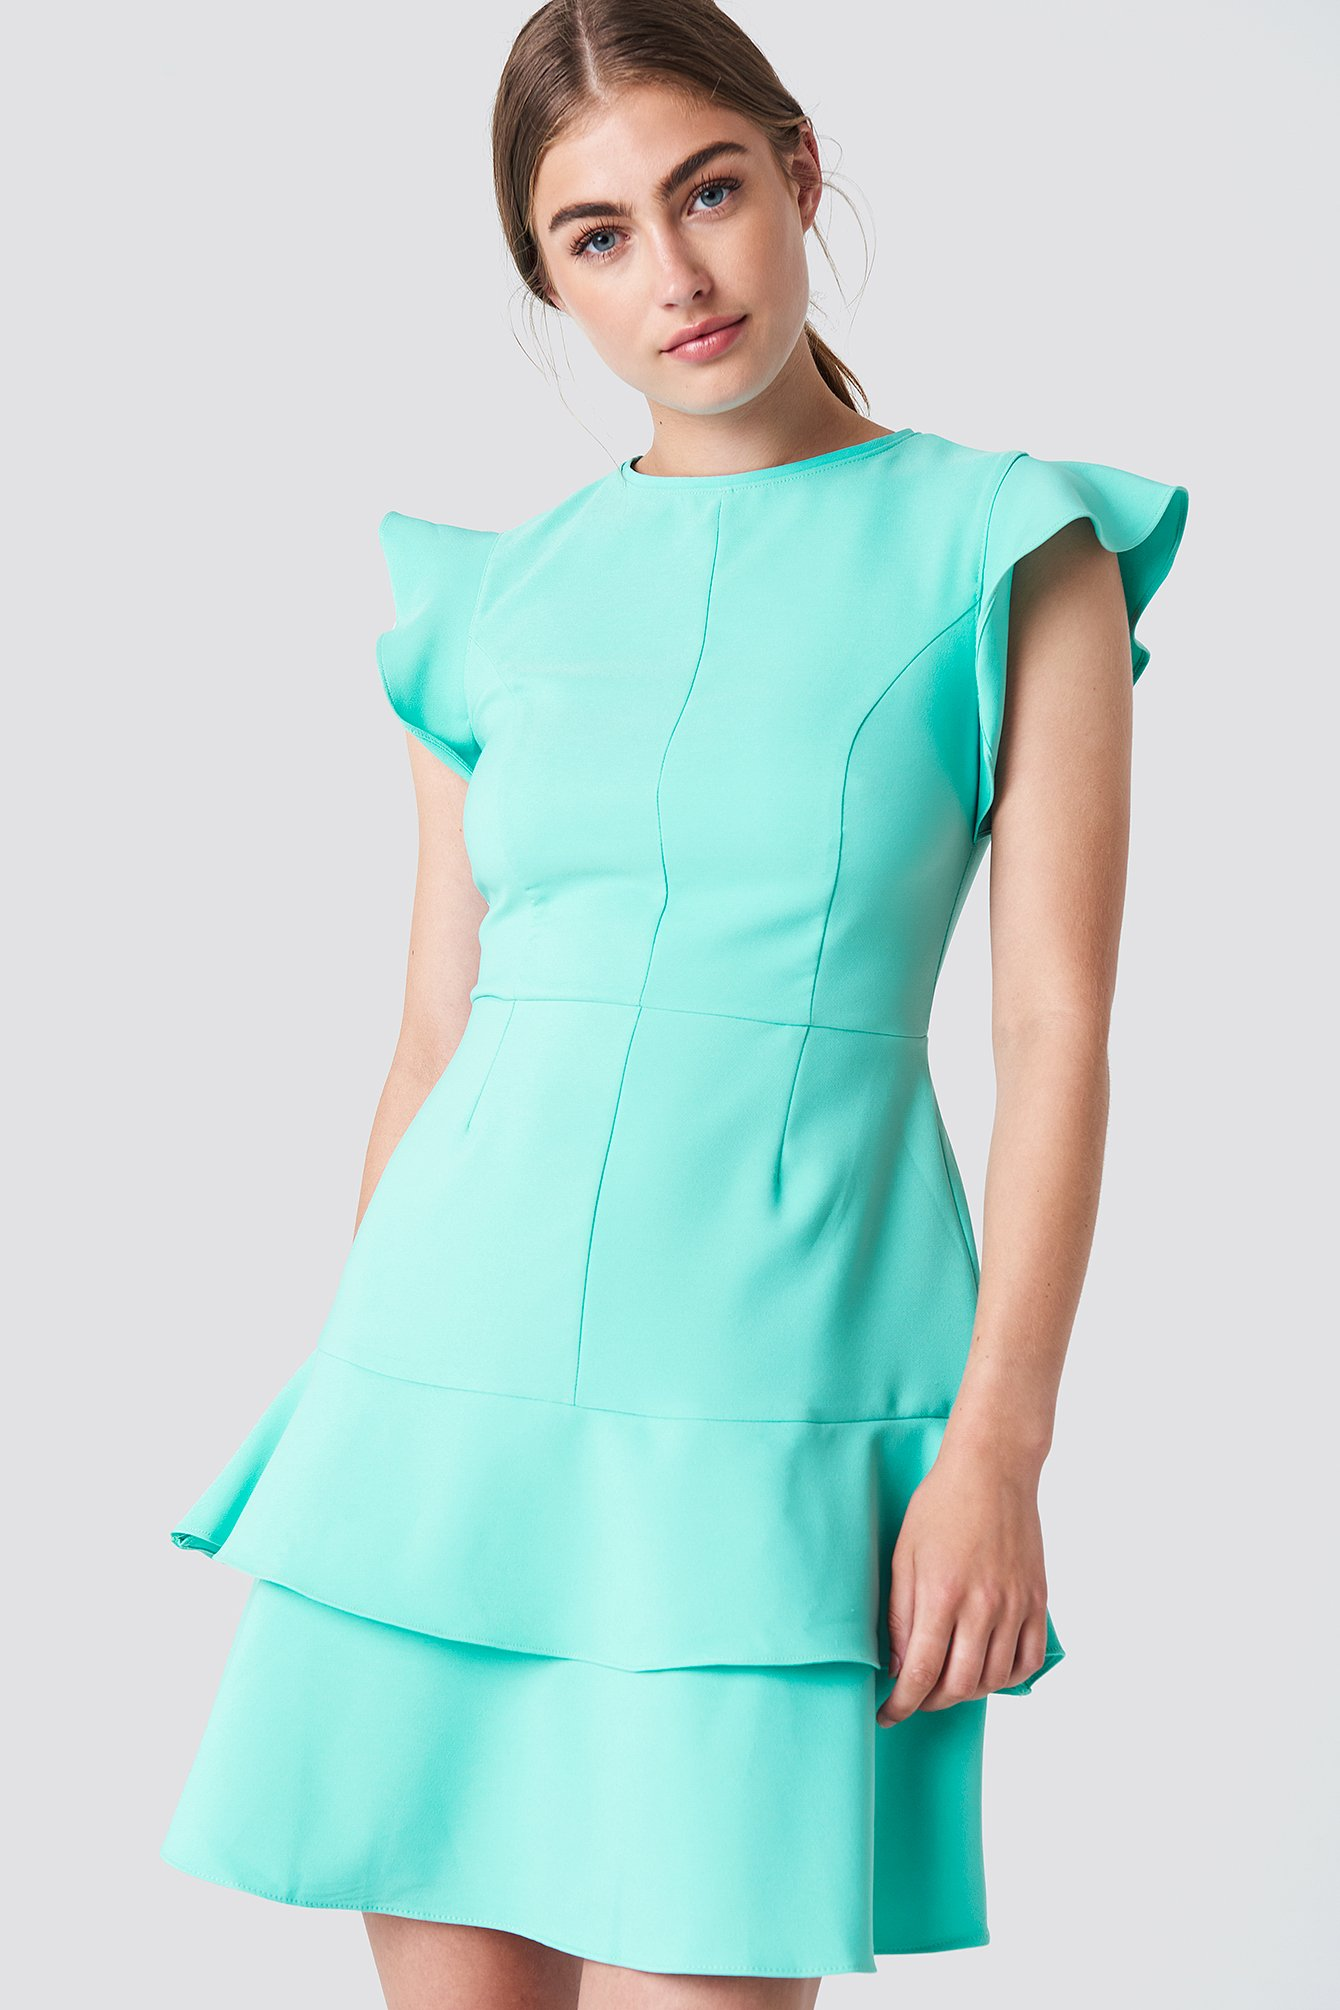 Flounce Shoulder Mini Dress - Green, Turquoise in Green,Turquoise